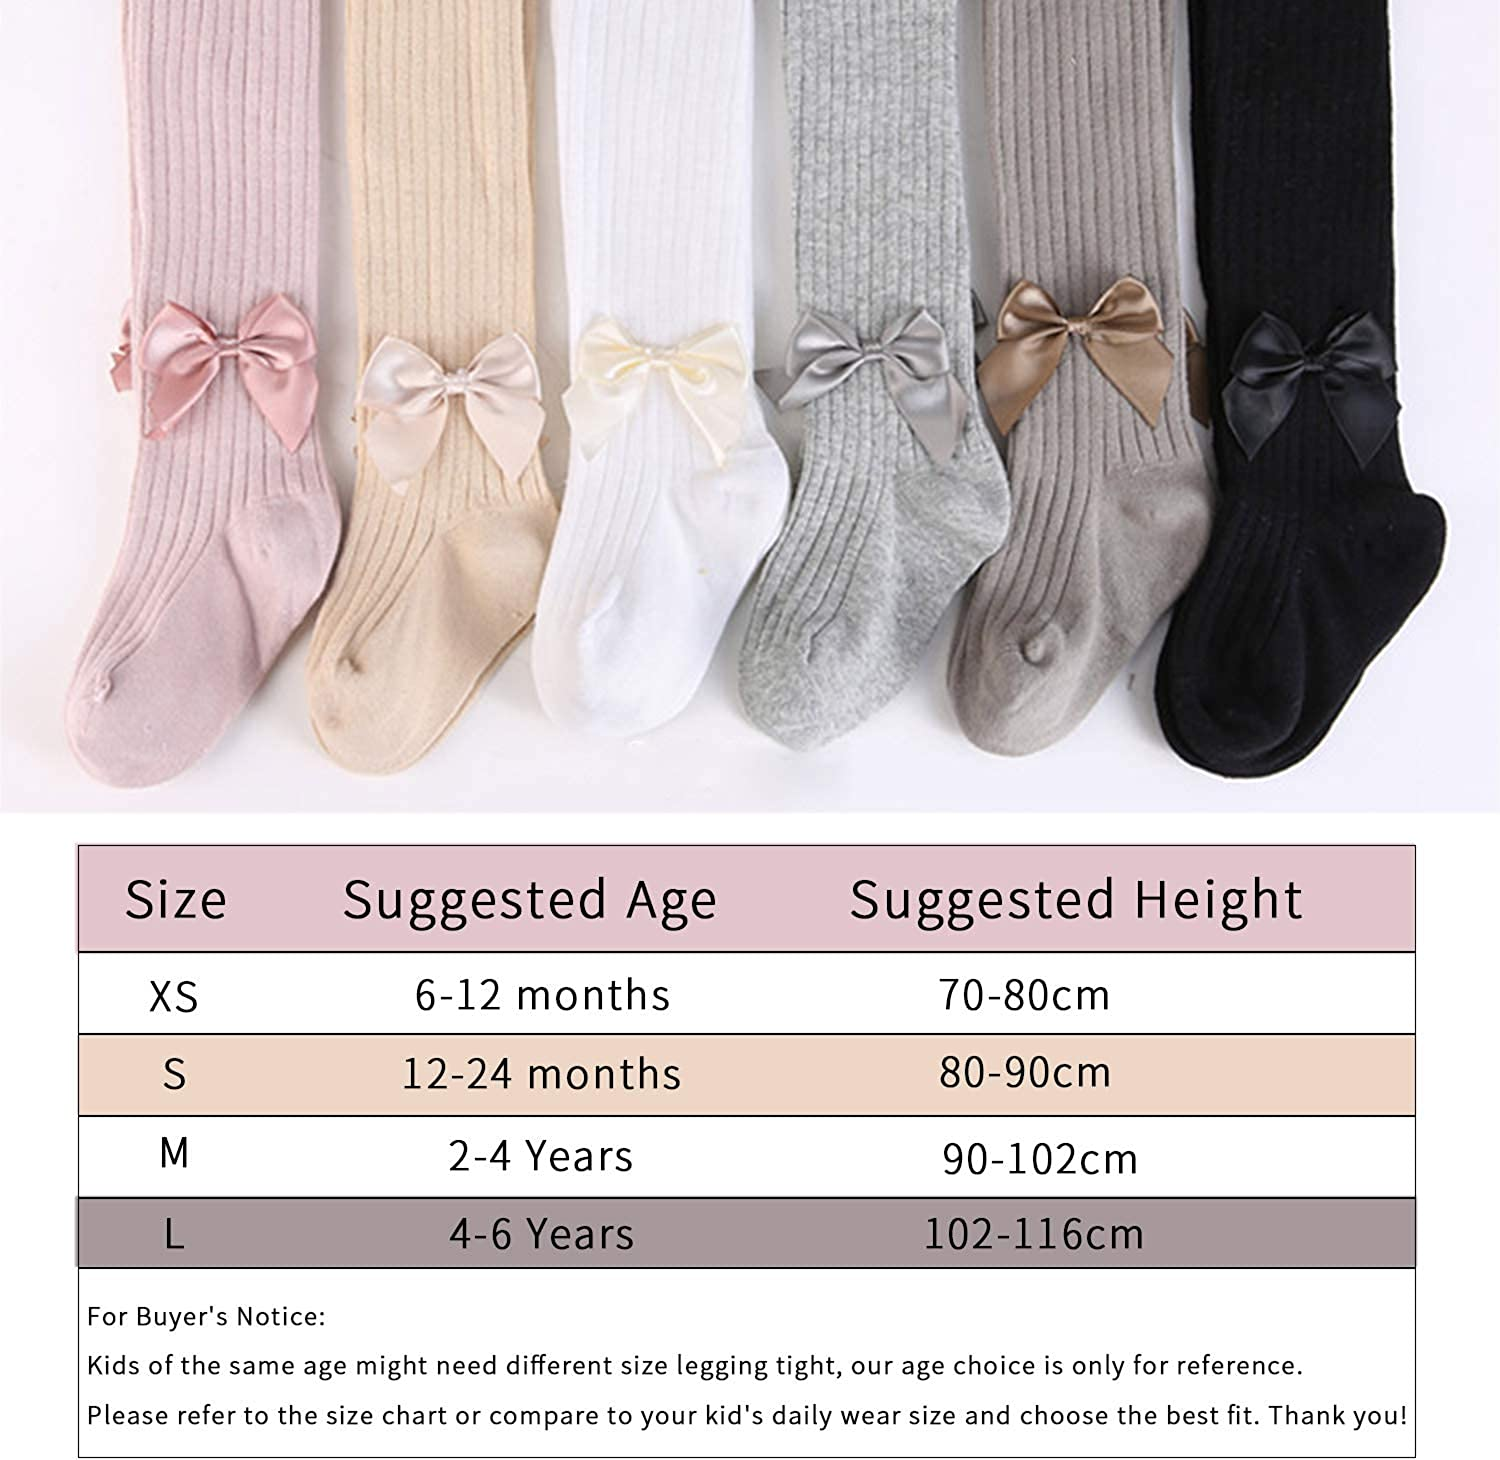 BOOPH Girls 4 Pack Little Toddler Bowknot Knit Tights Leggings Cotton Stocking Pants for Kids